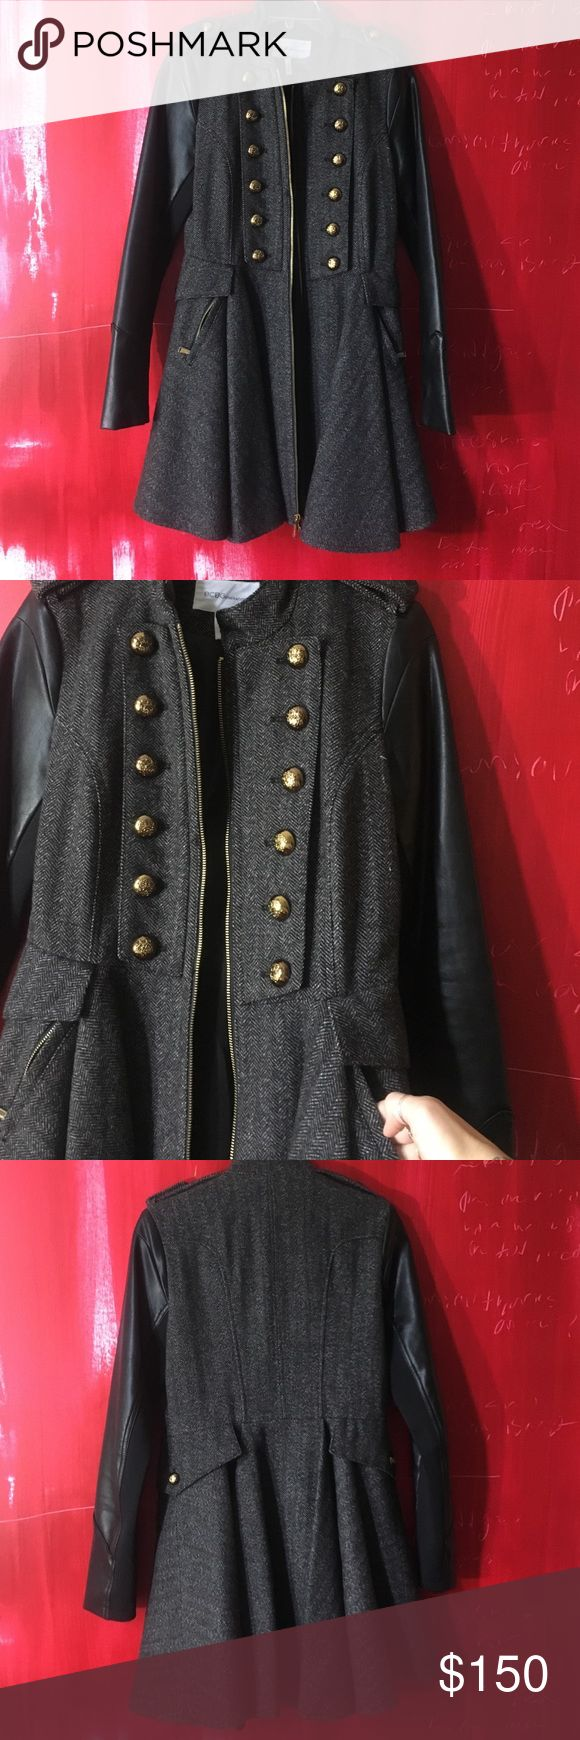 BCBGeneration coat Military style coat. Dress like hem flares out fits really well at top. Faux leather sleeves and tweed fabric. Size small. NO TRADES! Love this coat just want to see if anyone wants to buy! BCBGeneration Jackets & Coats Utility Jackets